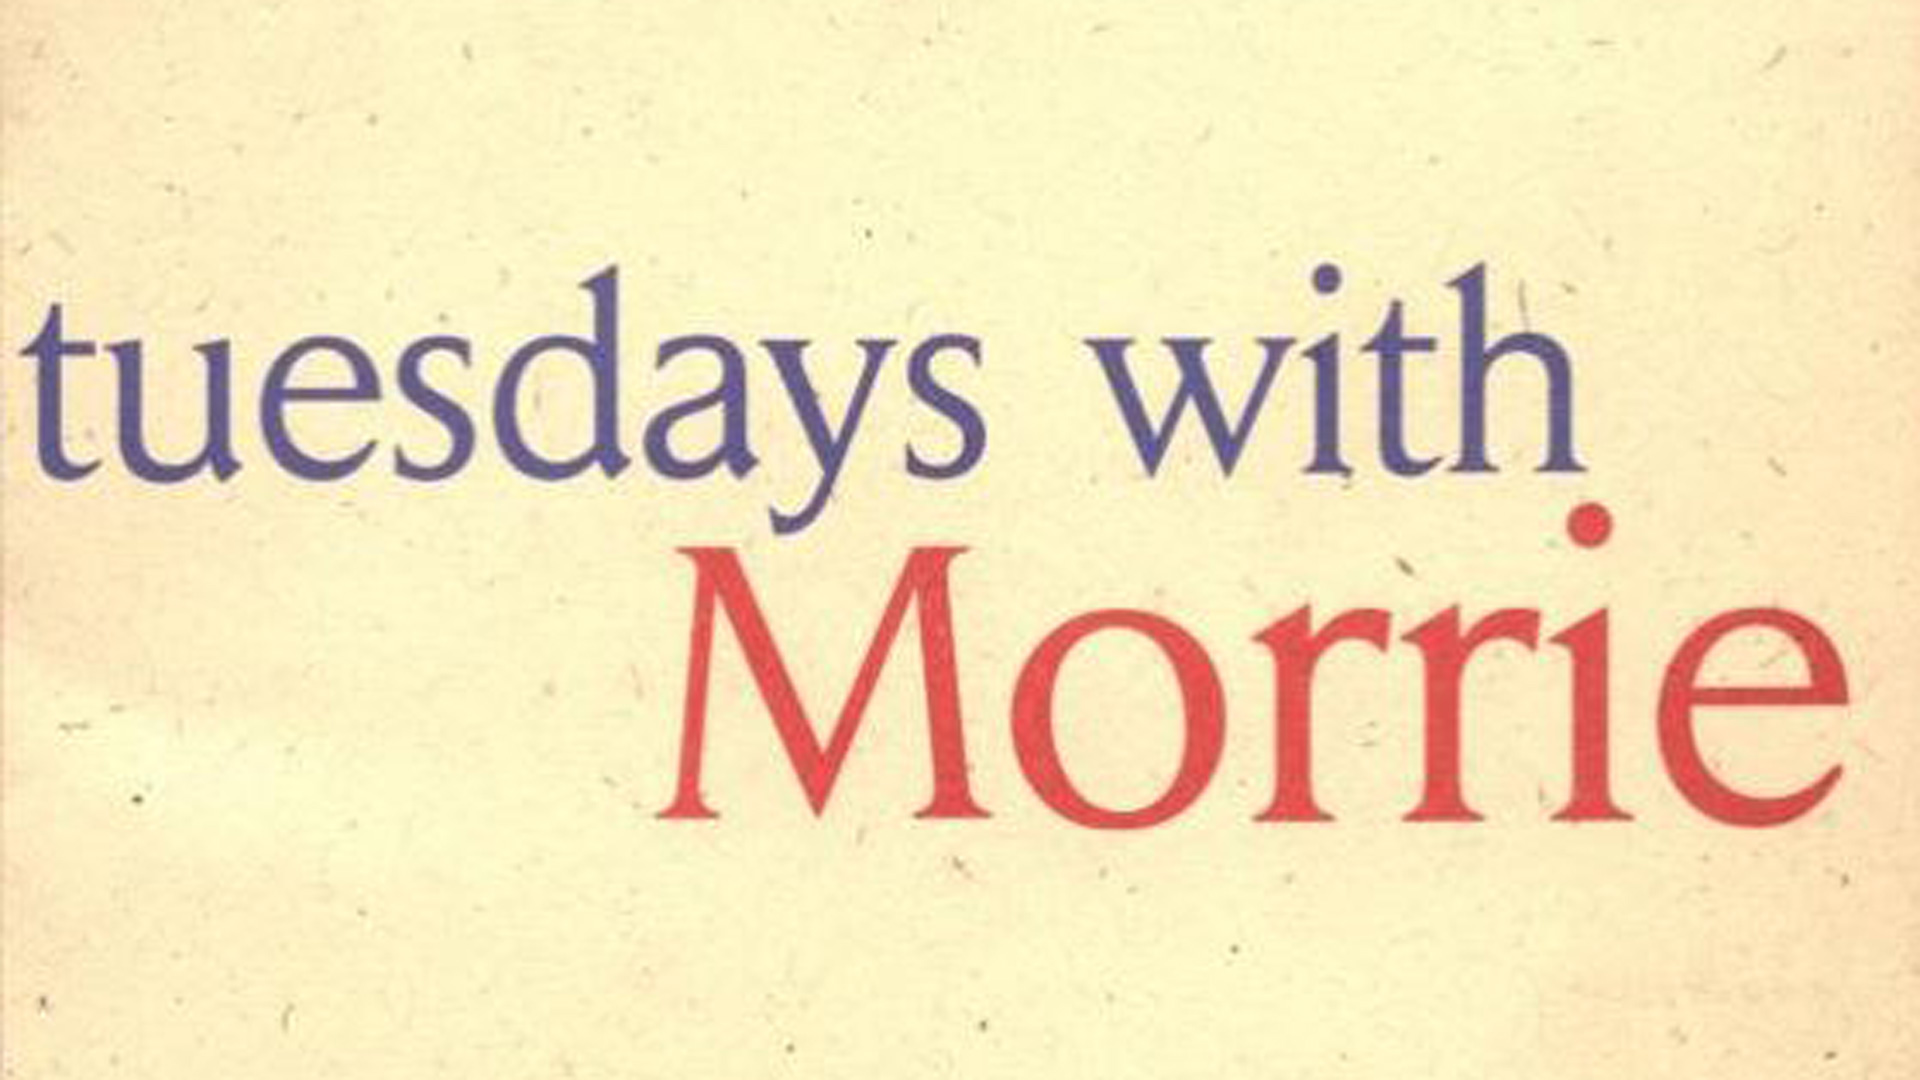 tuesdays with morrie analysis essay